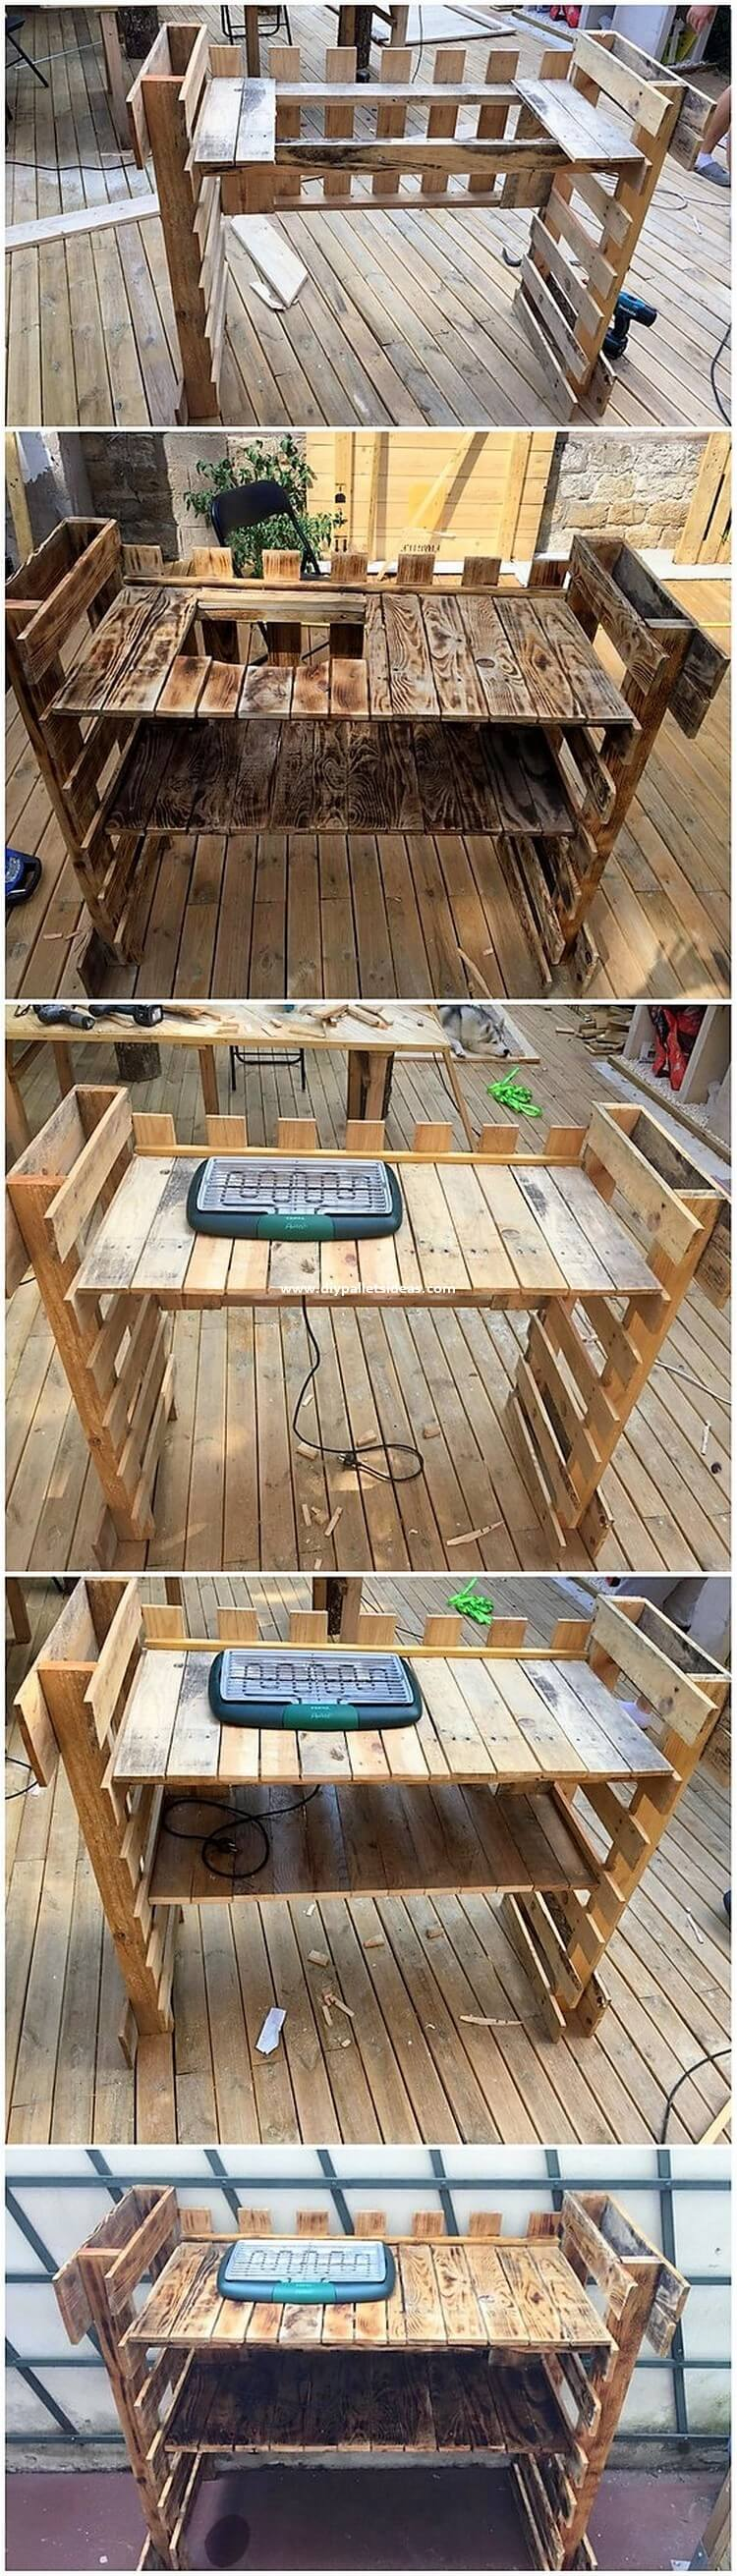 DIY Pallet Grill Table